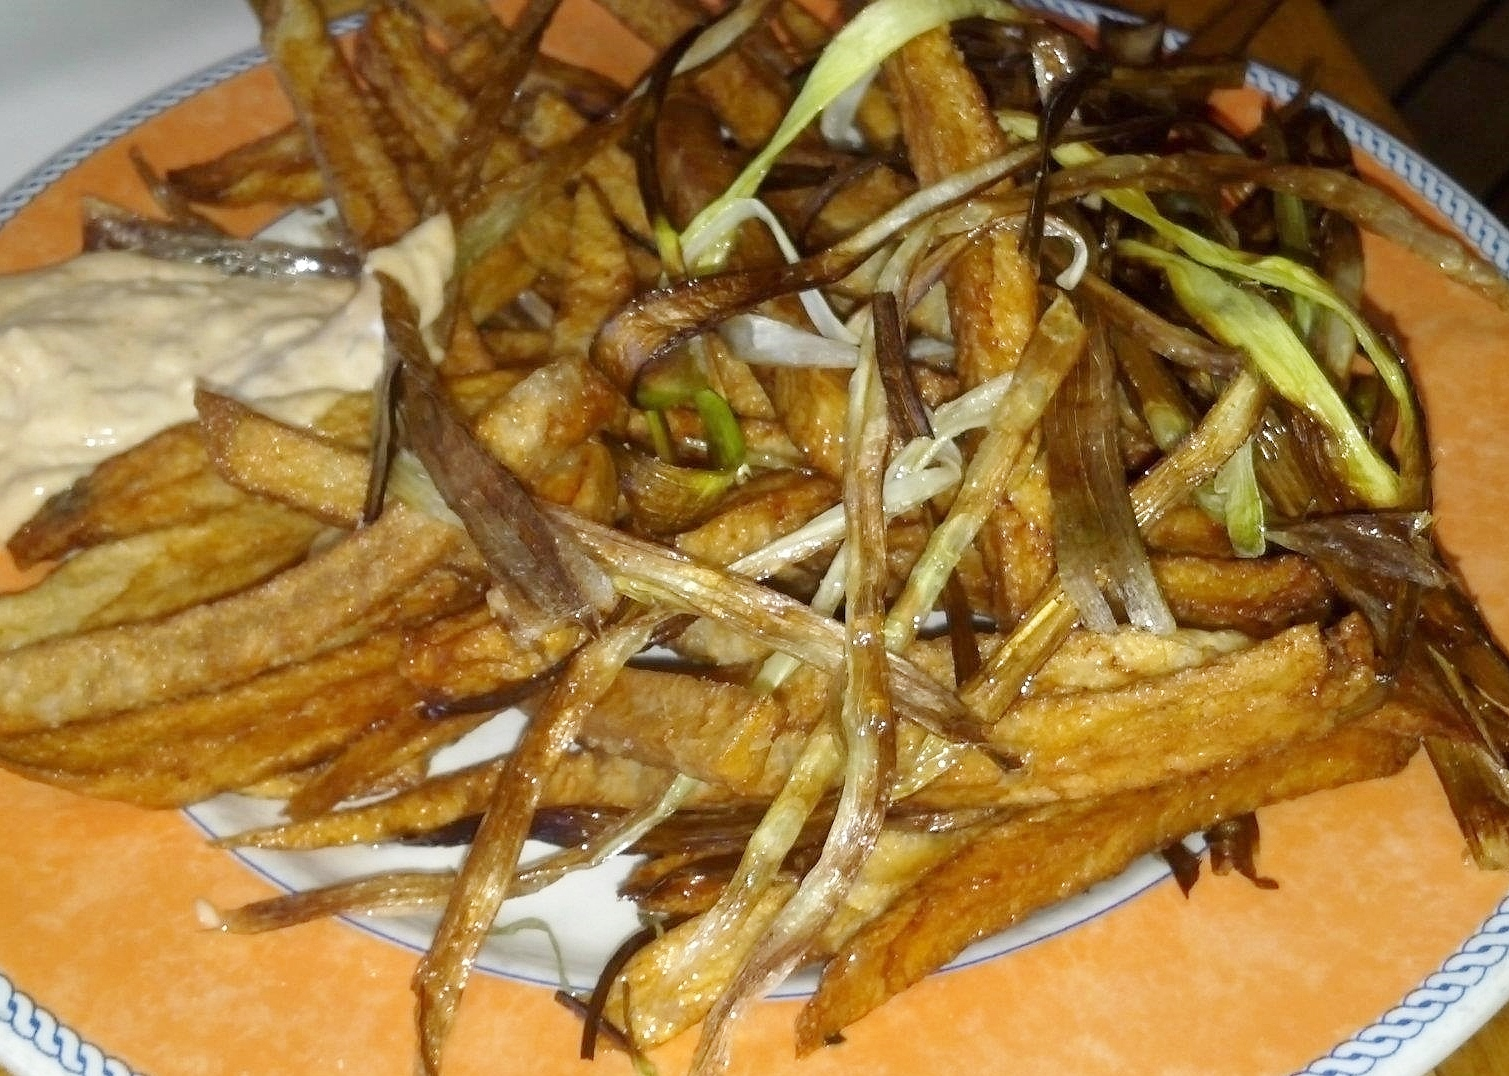 Patatine fritte - fried potatoes with crispy leeks